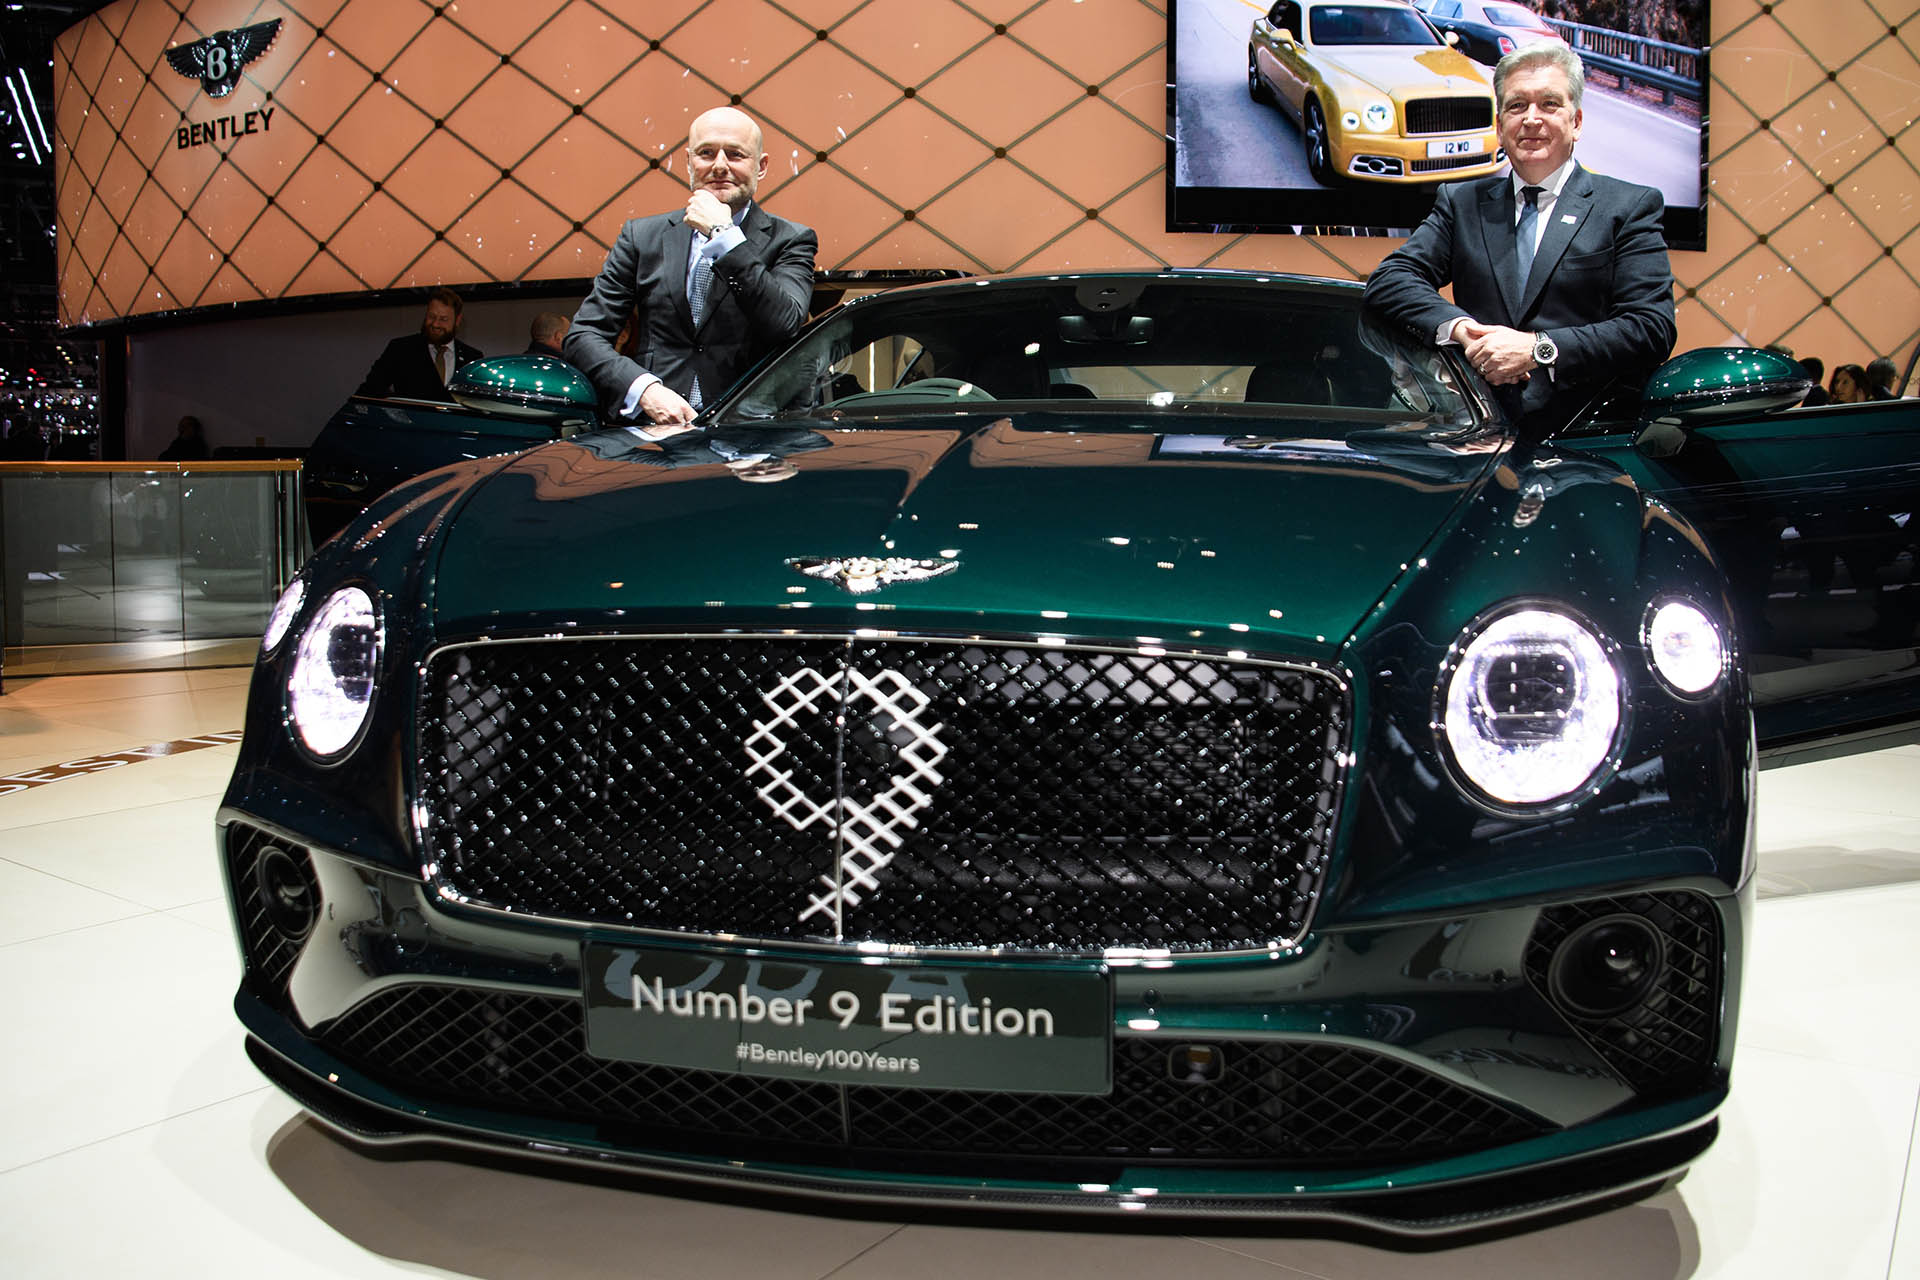 Launch der Premier Bentley Centenary Limited Edition auf dem Genfer Automobilsalon am 5. März 2019